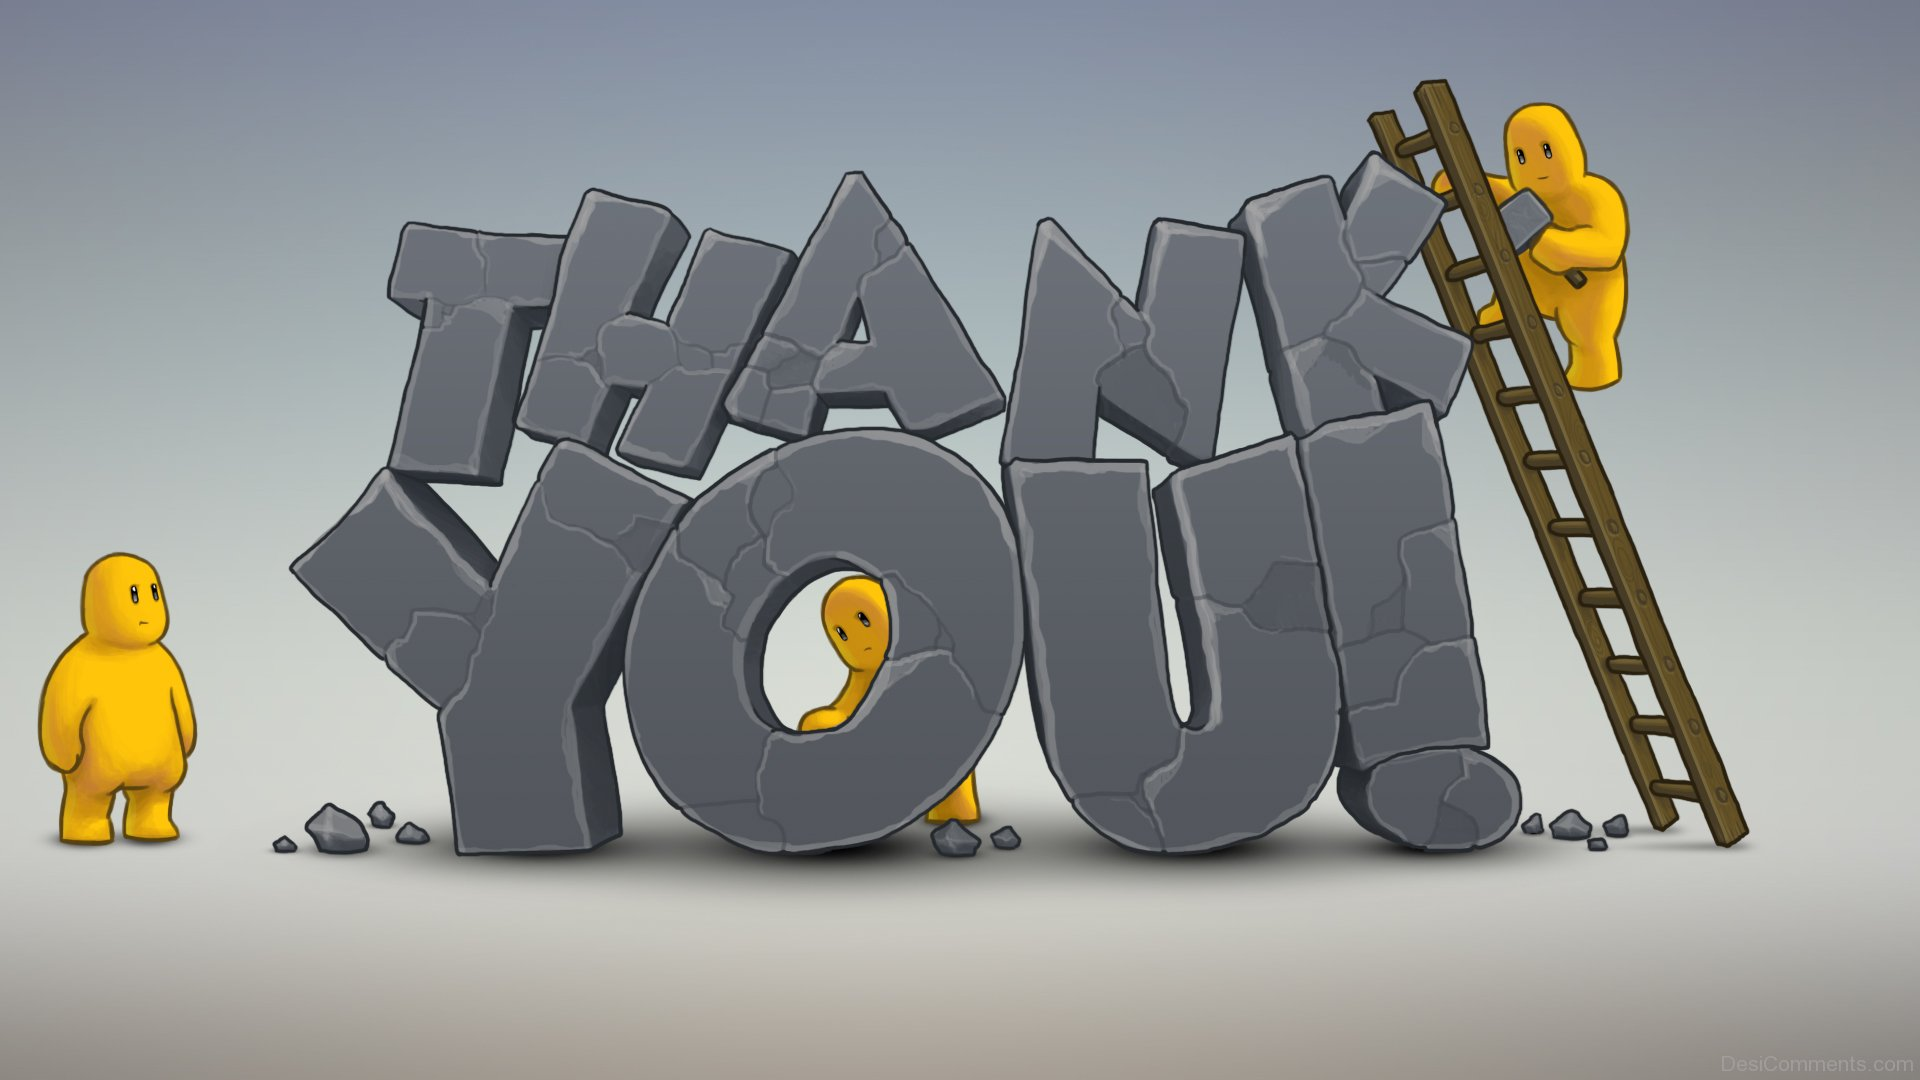 Thank you pictures images graphics thank you voltagebd Choice Image